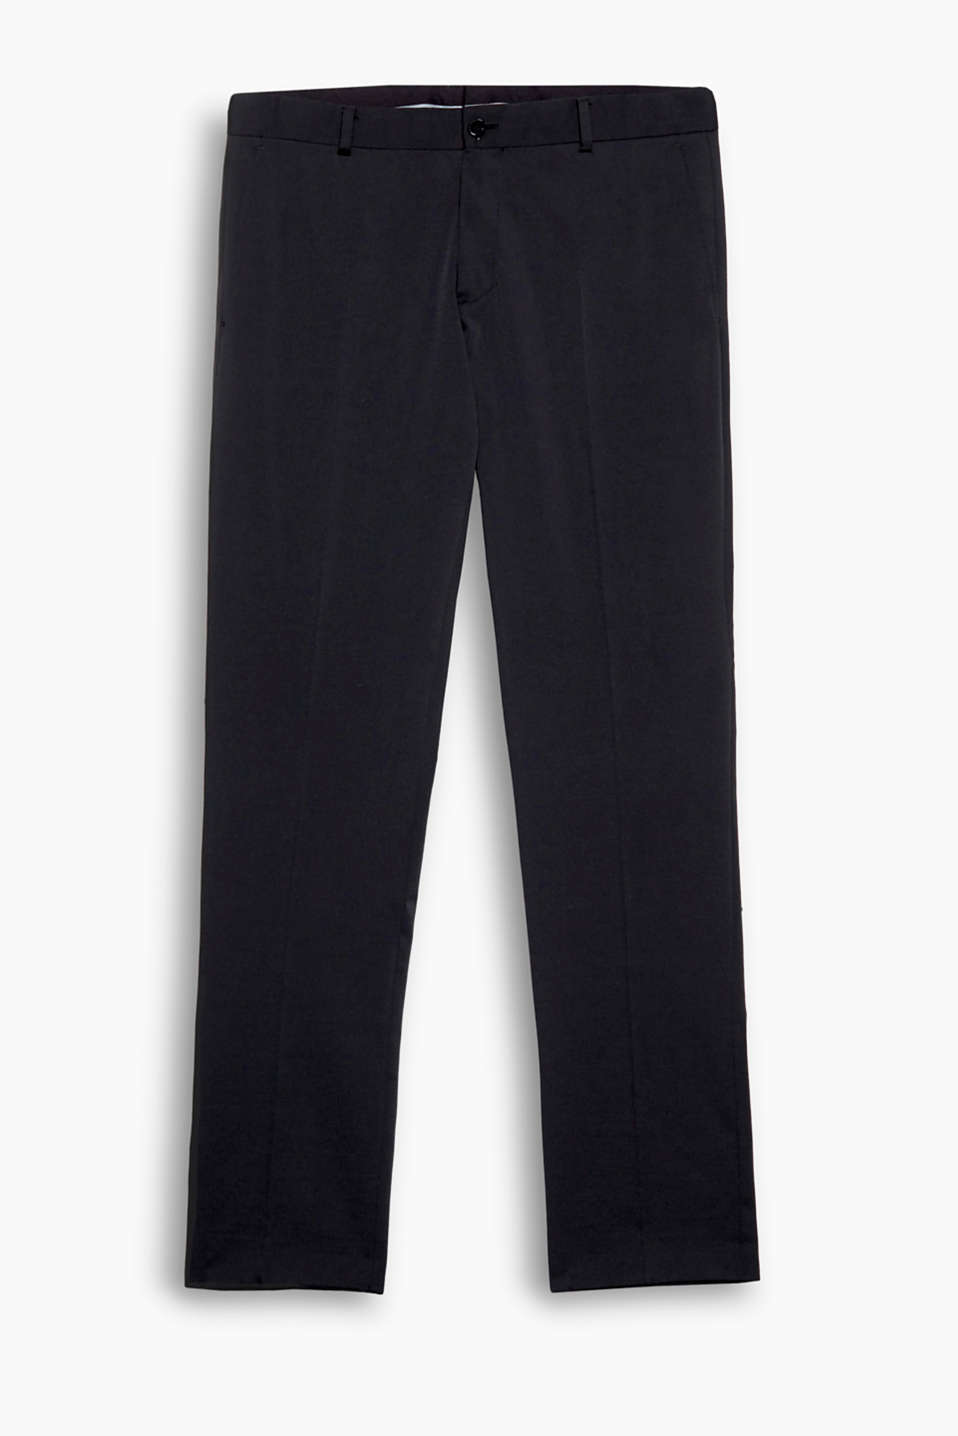 A classic that no wardrobe should be without: suit trousers with a satin sheen and waist pleats